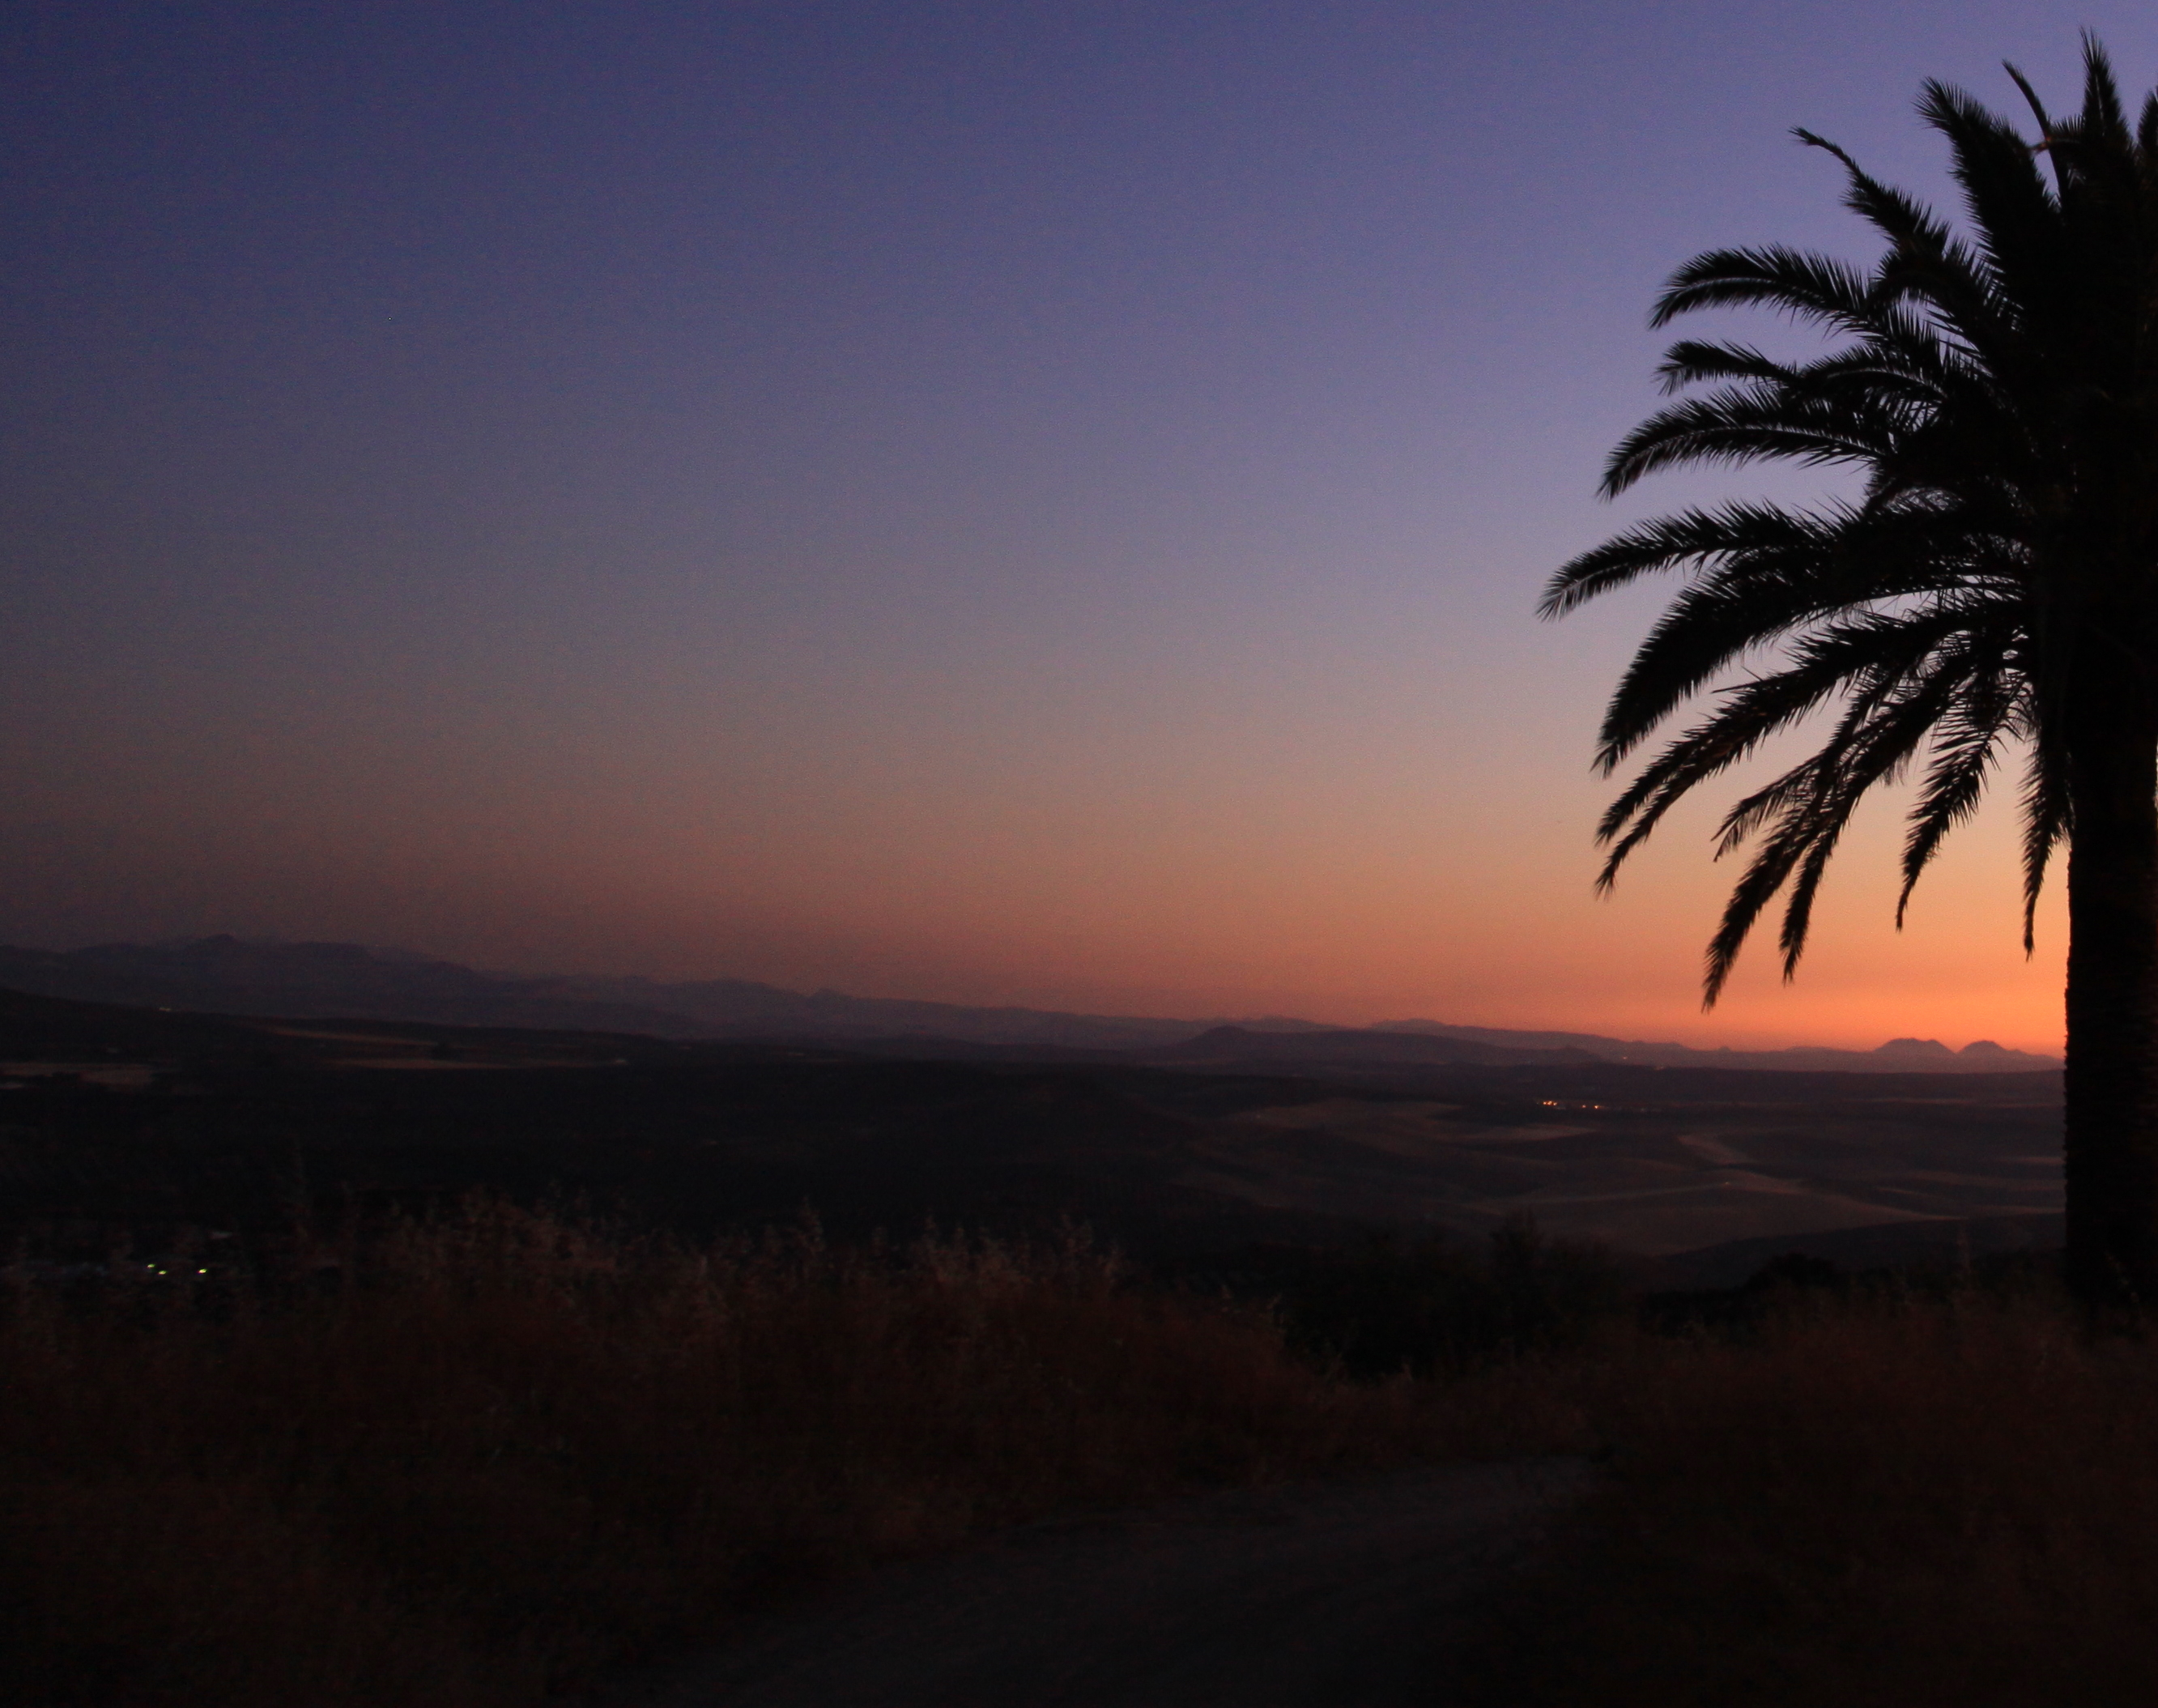 Sunset from one of the trails adventure sports spain www.andrewforbes.com